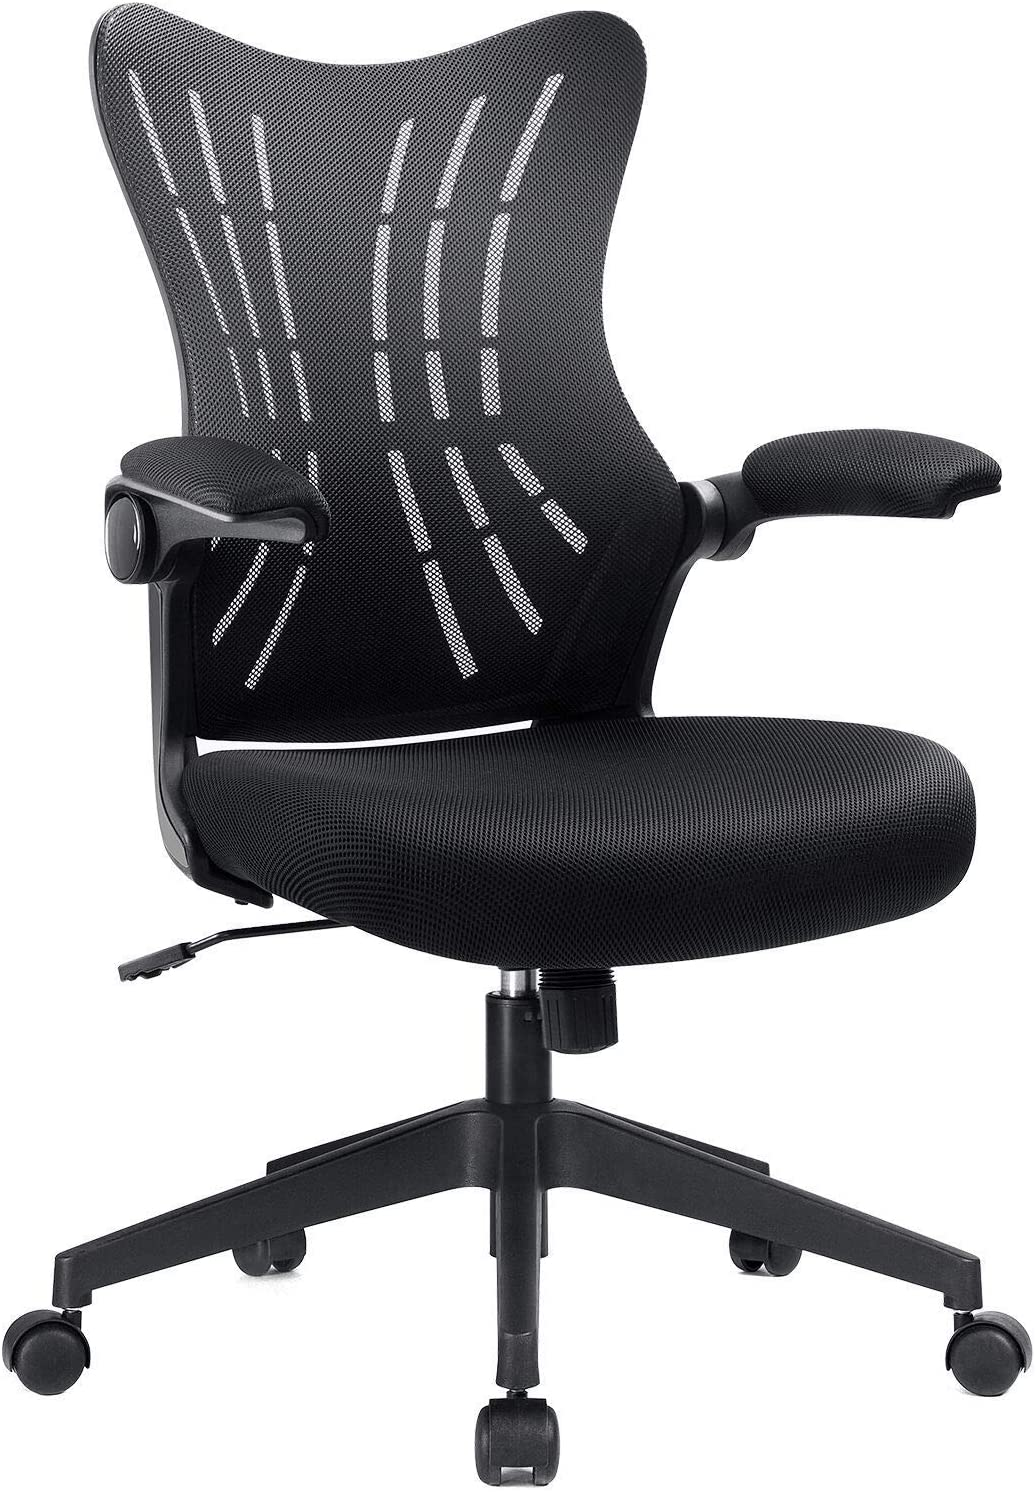 Furmax Office Desk Chair with Flip Arms,Mid Back Mesh Computer Chair Swivel Task Chair with Ergonomic with Lumbar Support (Black)